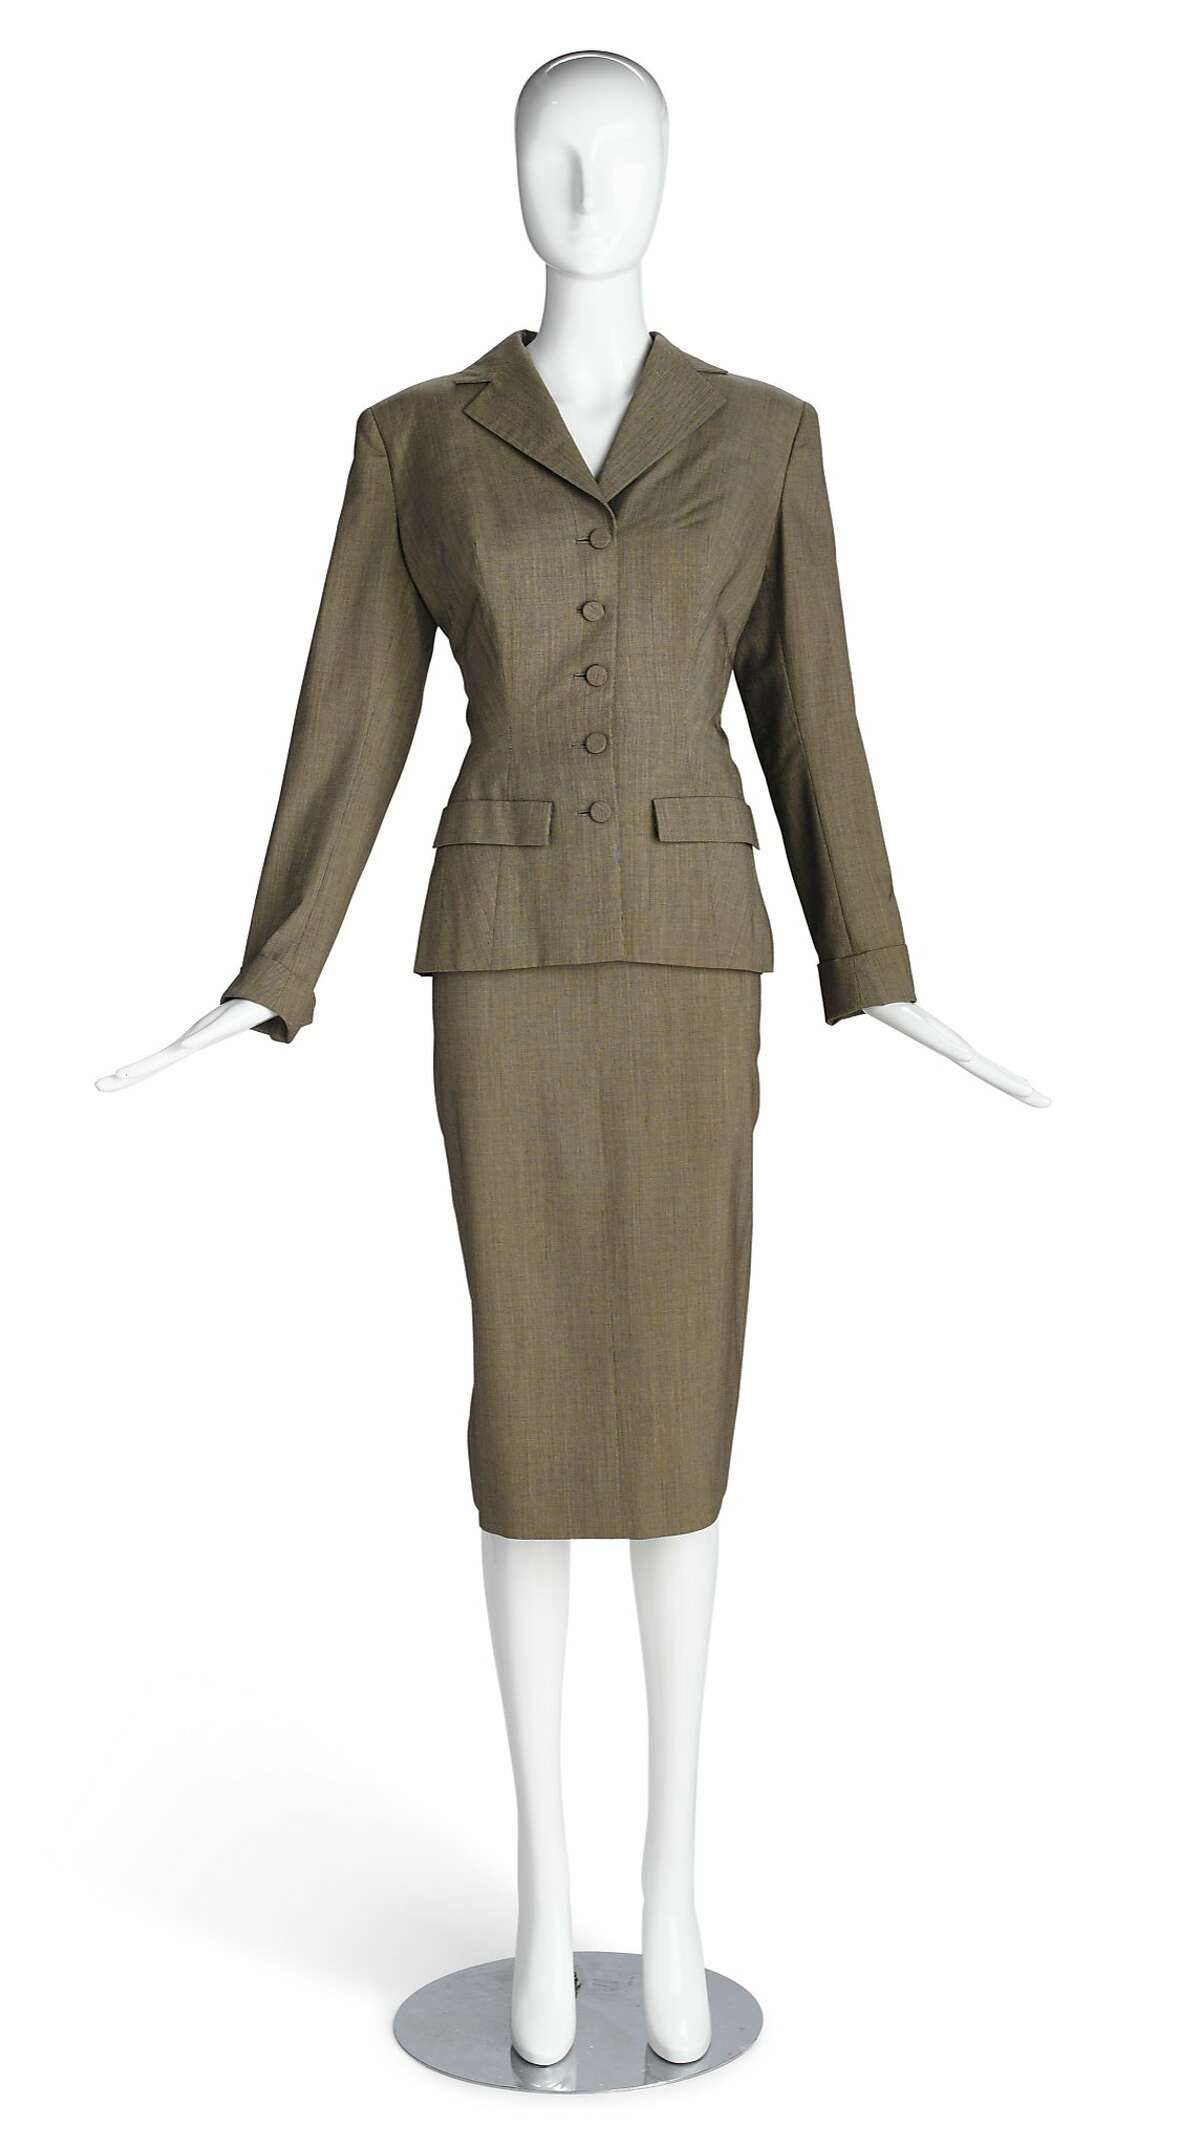 """The gray suit Kim Novak wore in """"Vertigo"""" was auction last fall by�Bonhams�in Los Angeles. The seller had picked up the item at a vintage clothes store, not knowing the suit�s provenance. Only later did a tag inside indicate its place in film history. Selling price: $28,750."""